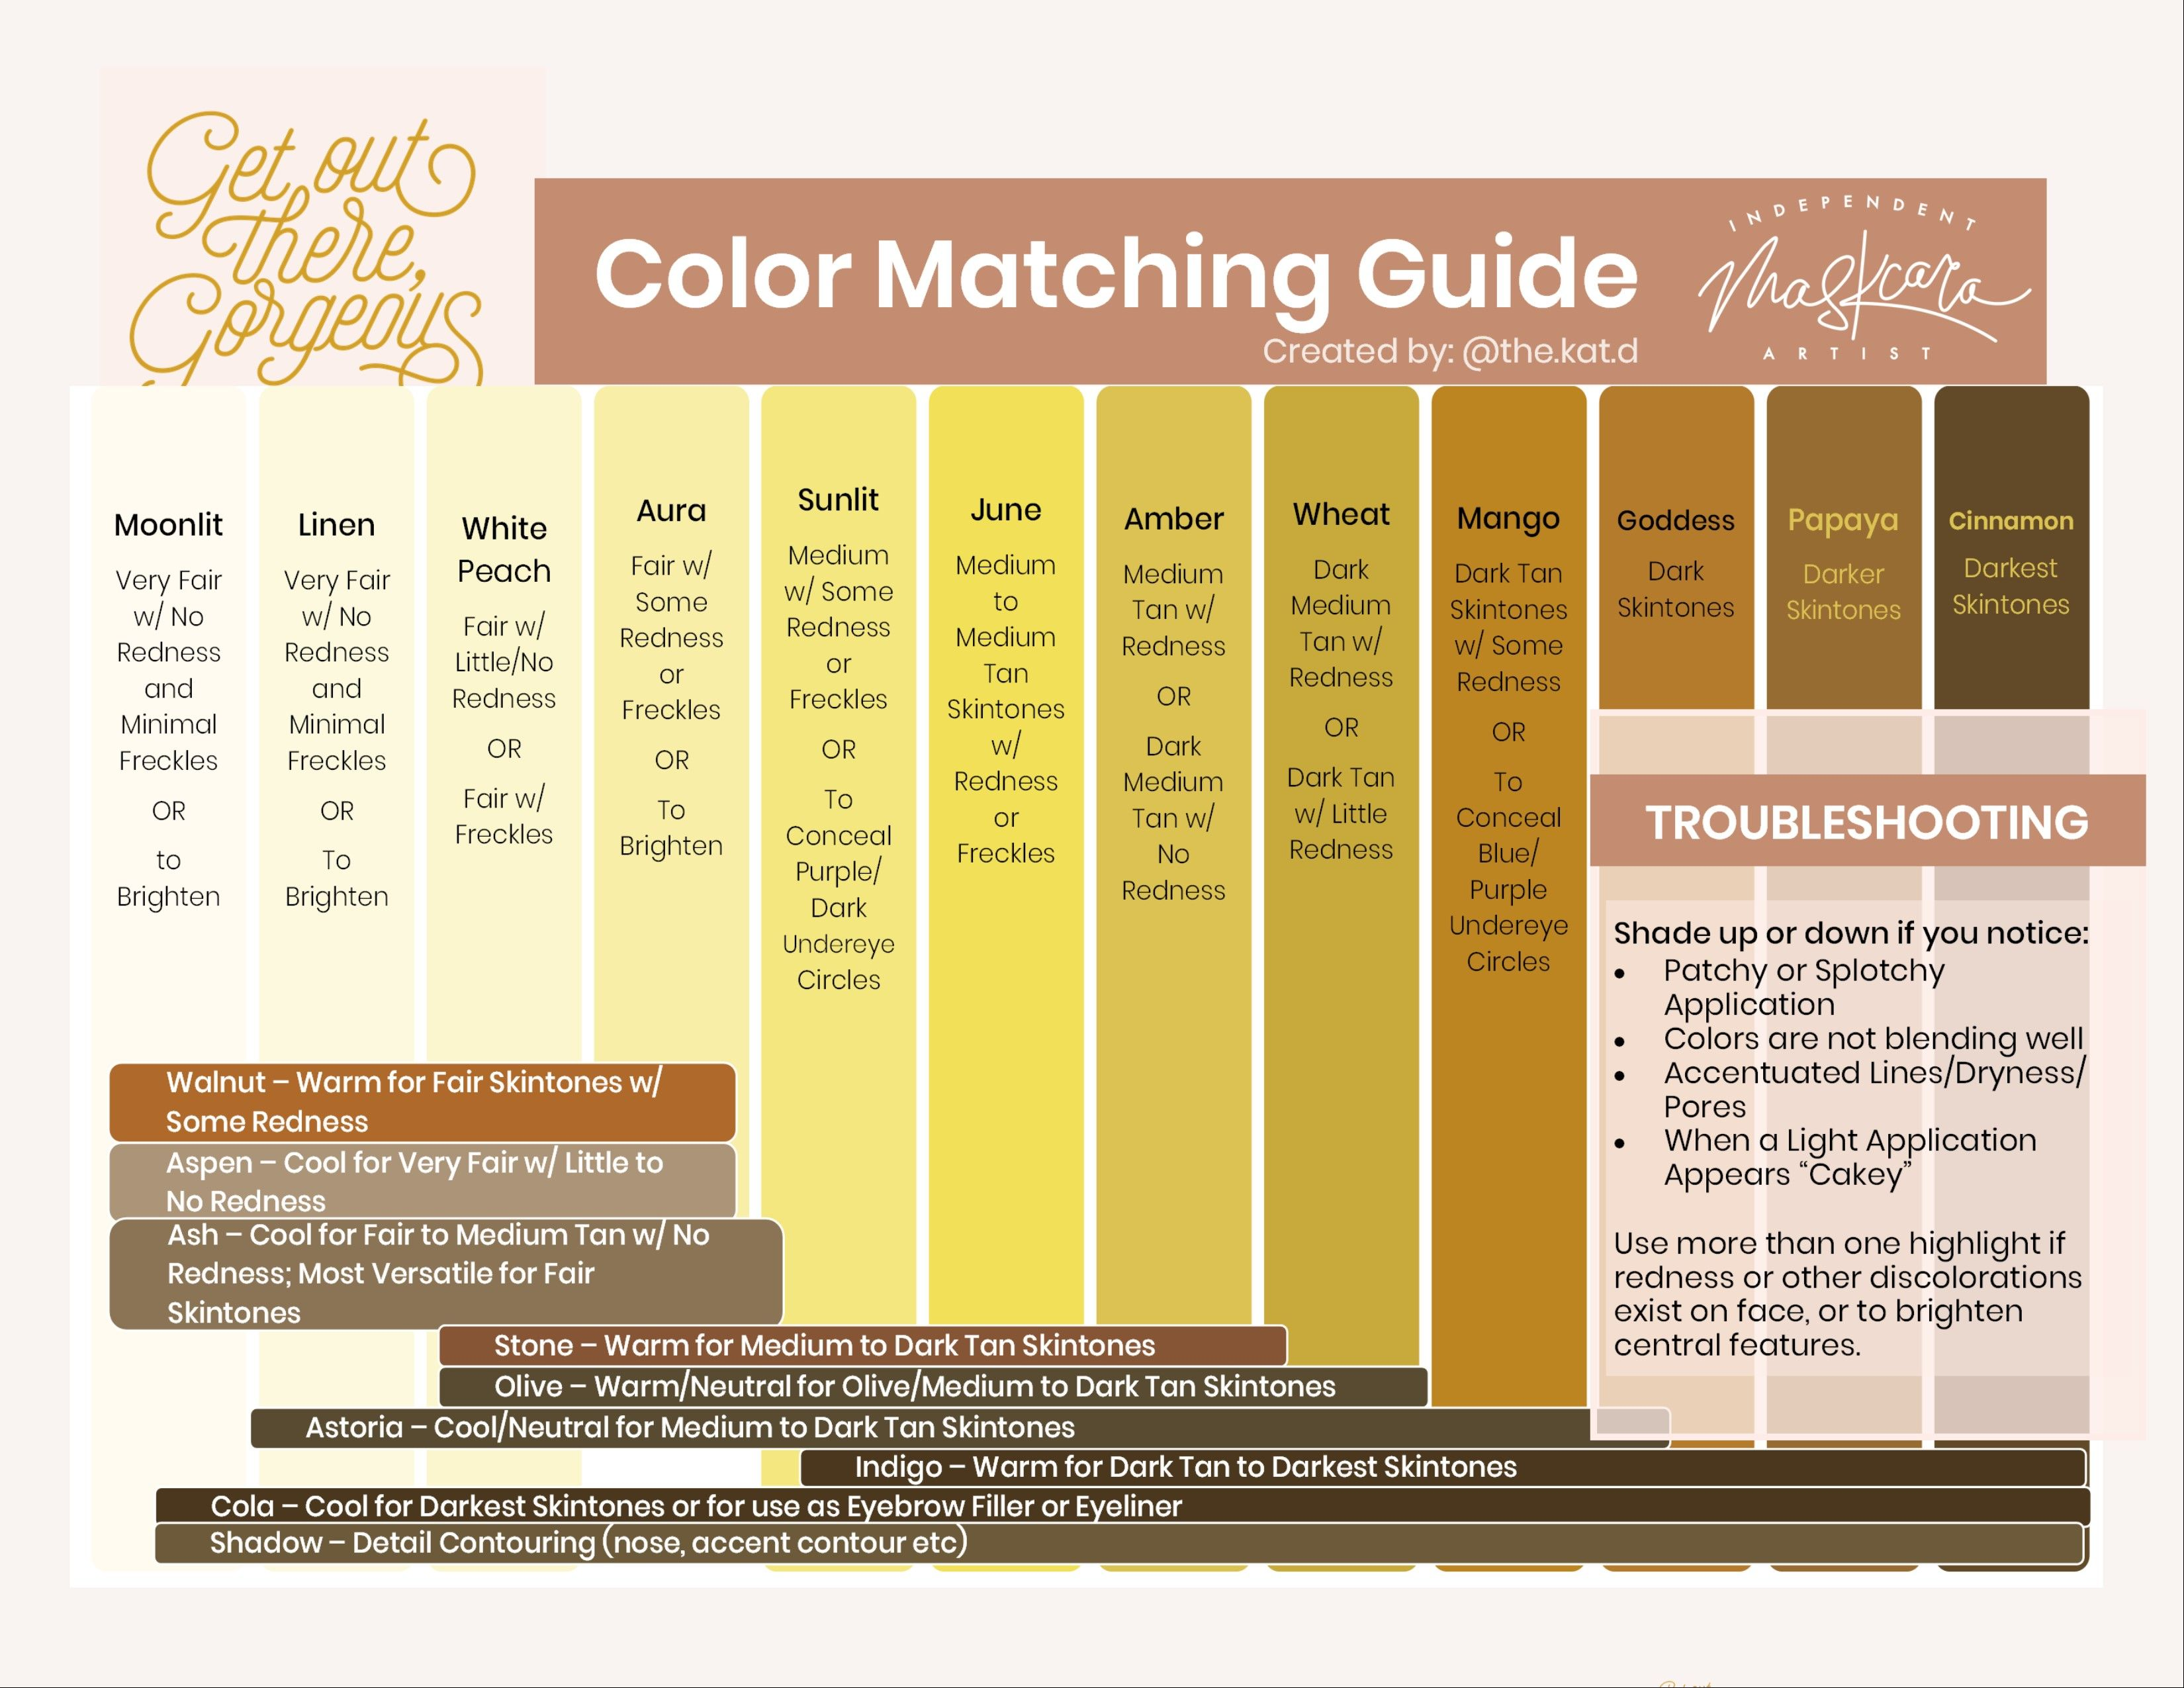 Color Matching Guide for Maskcara Beauty Artists and